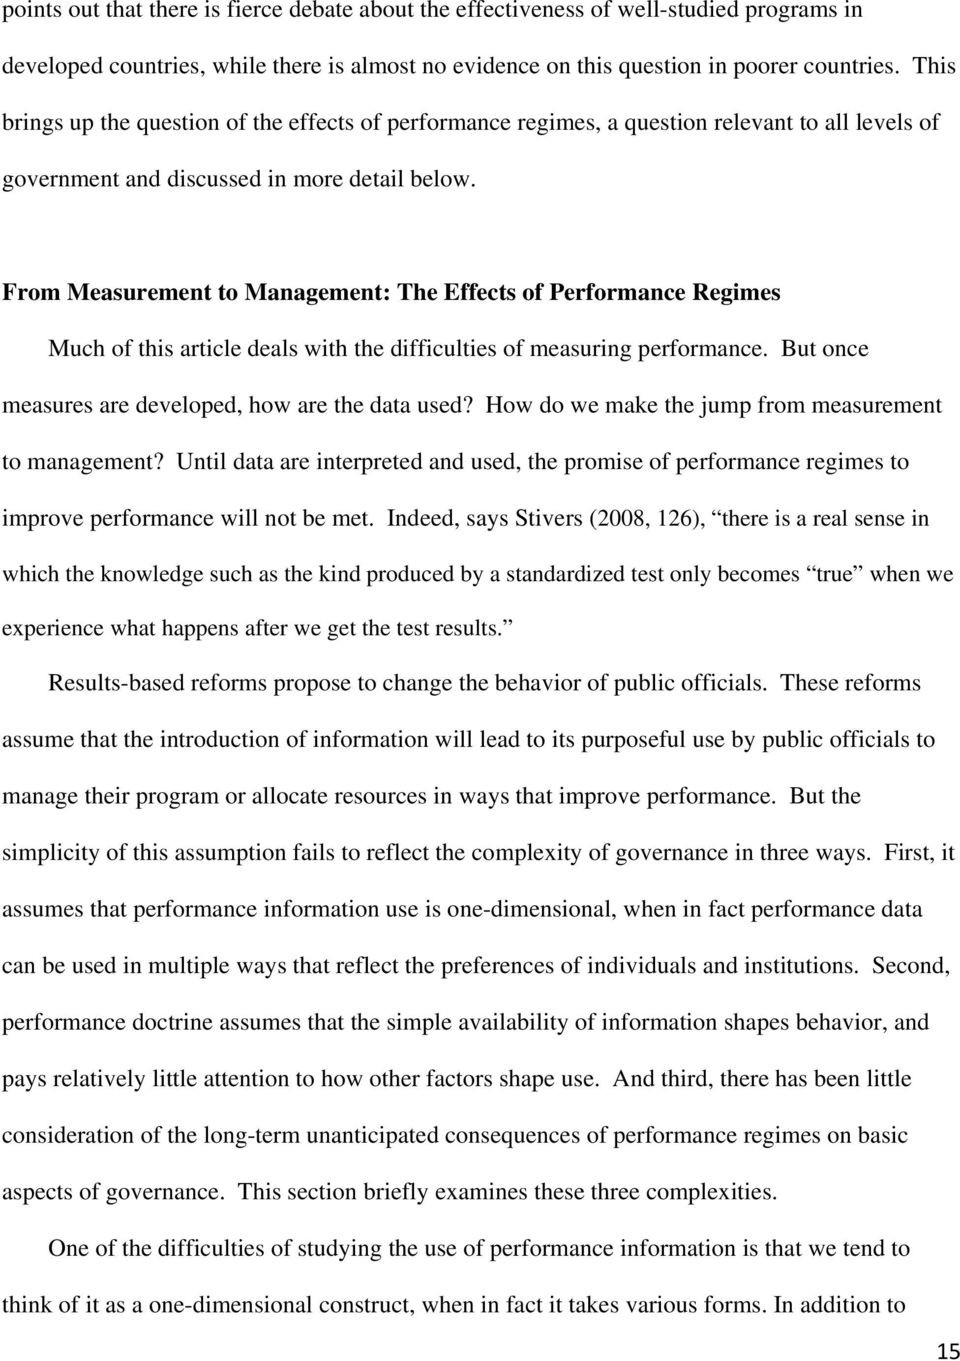 From Measurement to Management: The Effects of Performance Regimes Much of this article deals with the difficulties of measuring performance. But once measures are developed, how are the data used?